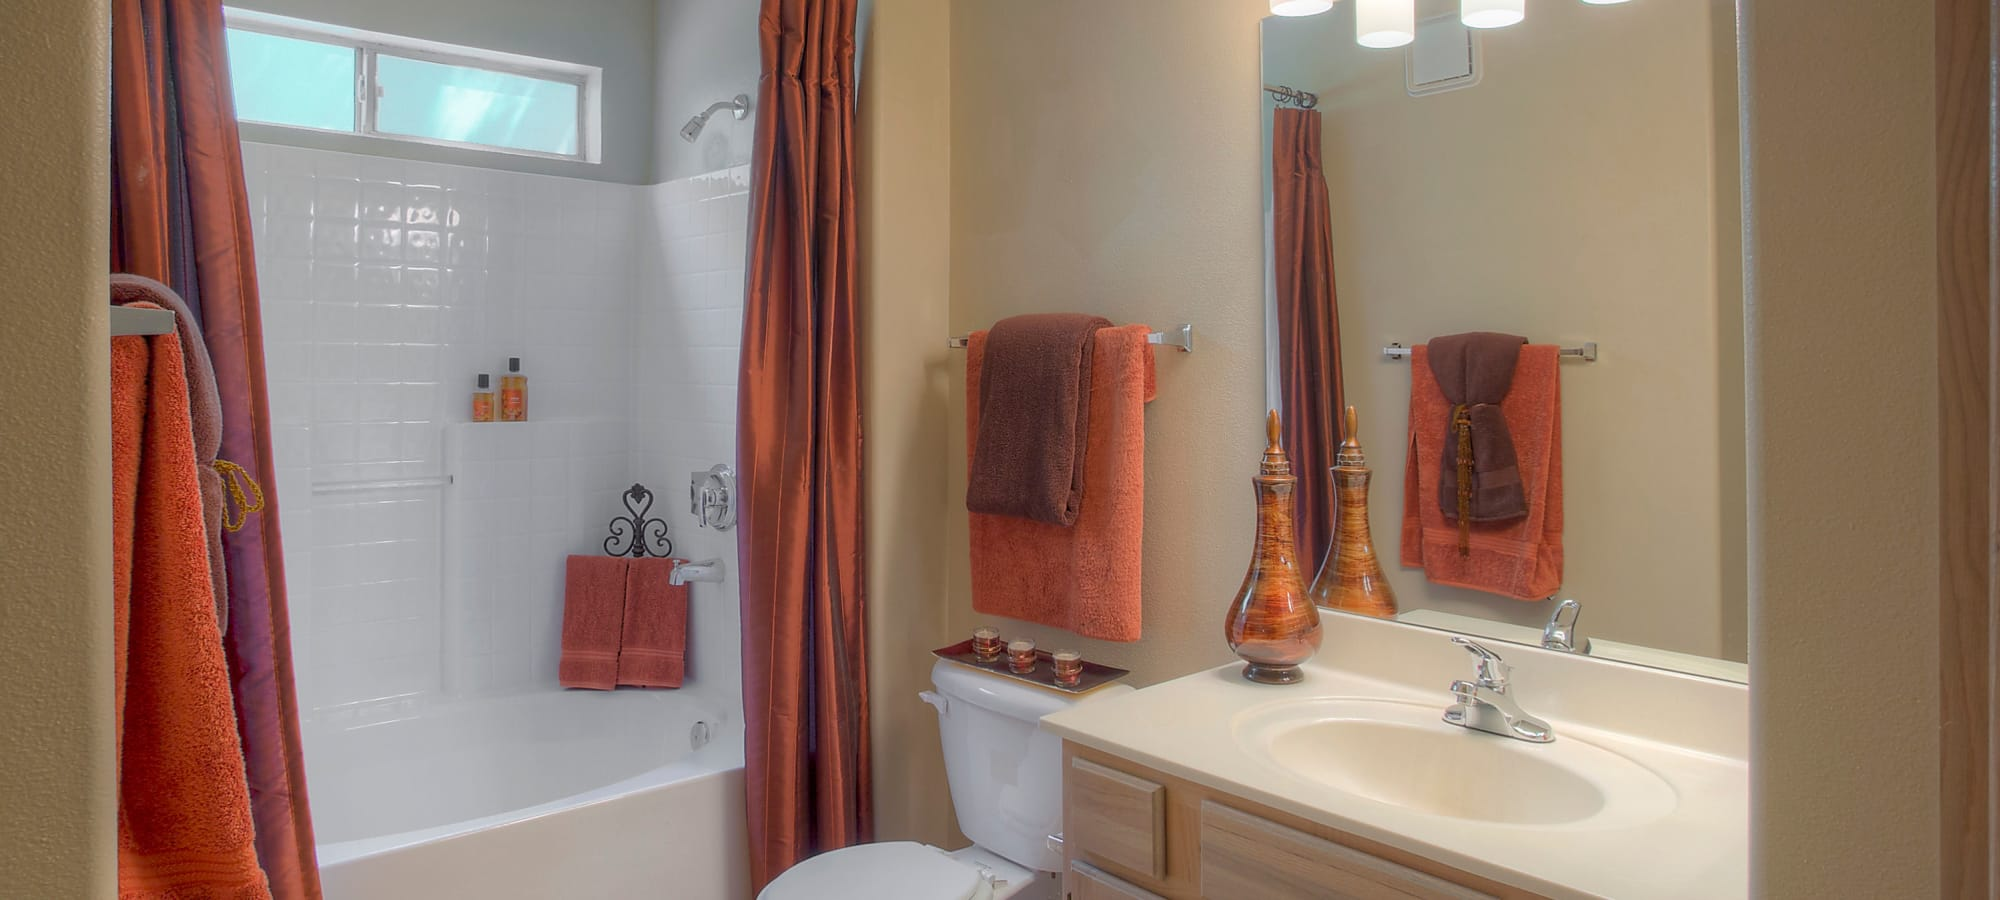 Decorated bathroom in model home at The Regents at Scottsdale in Scottsdale, Arizona